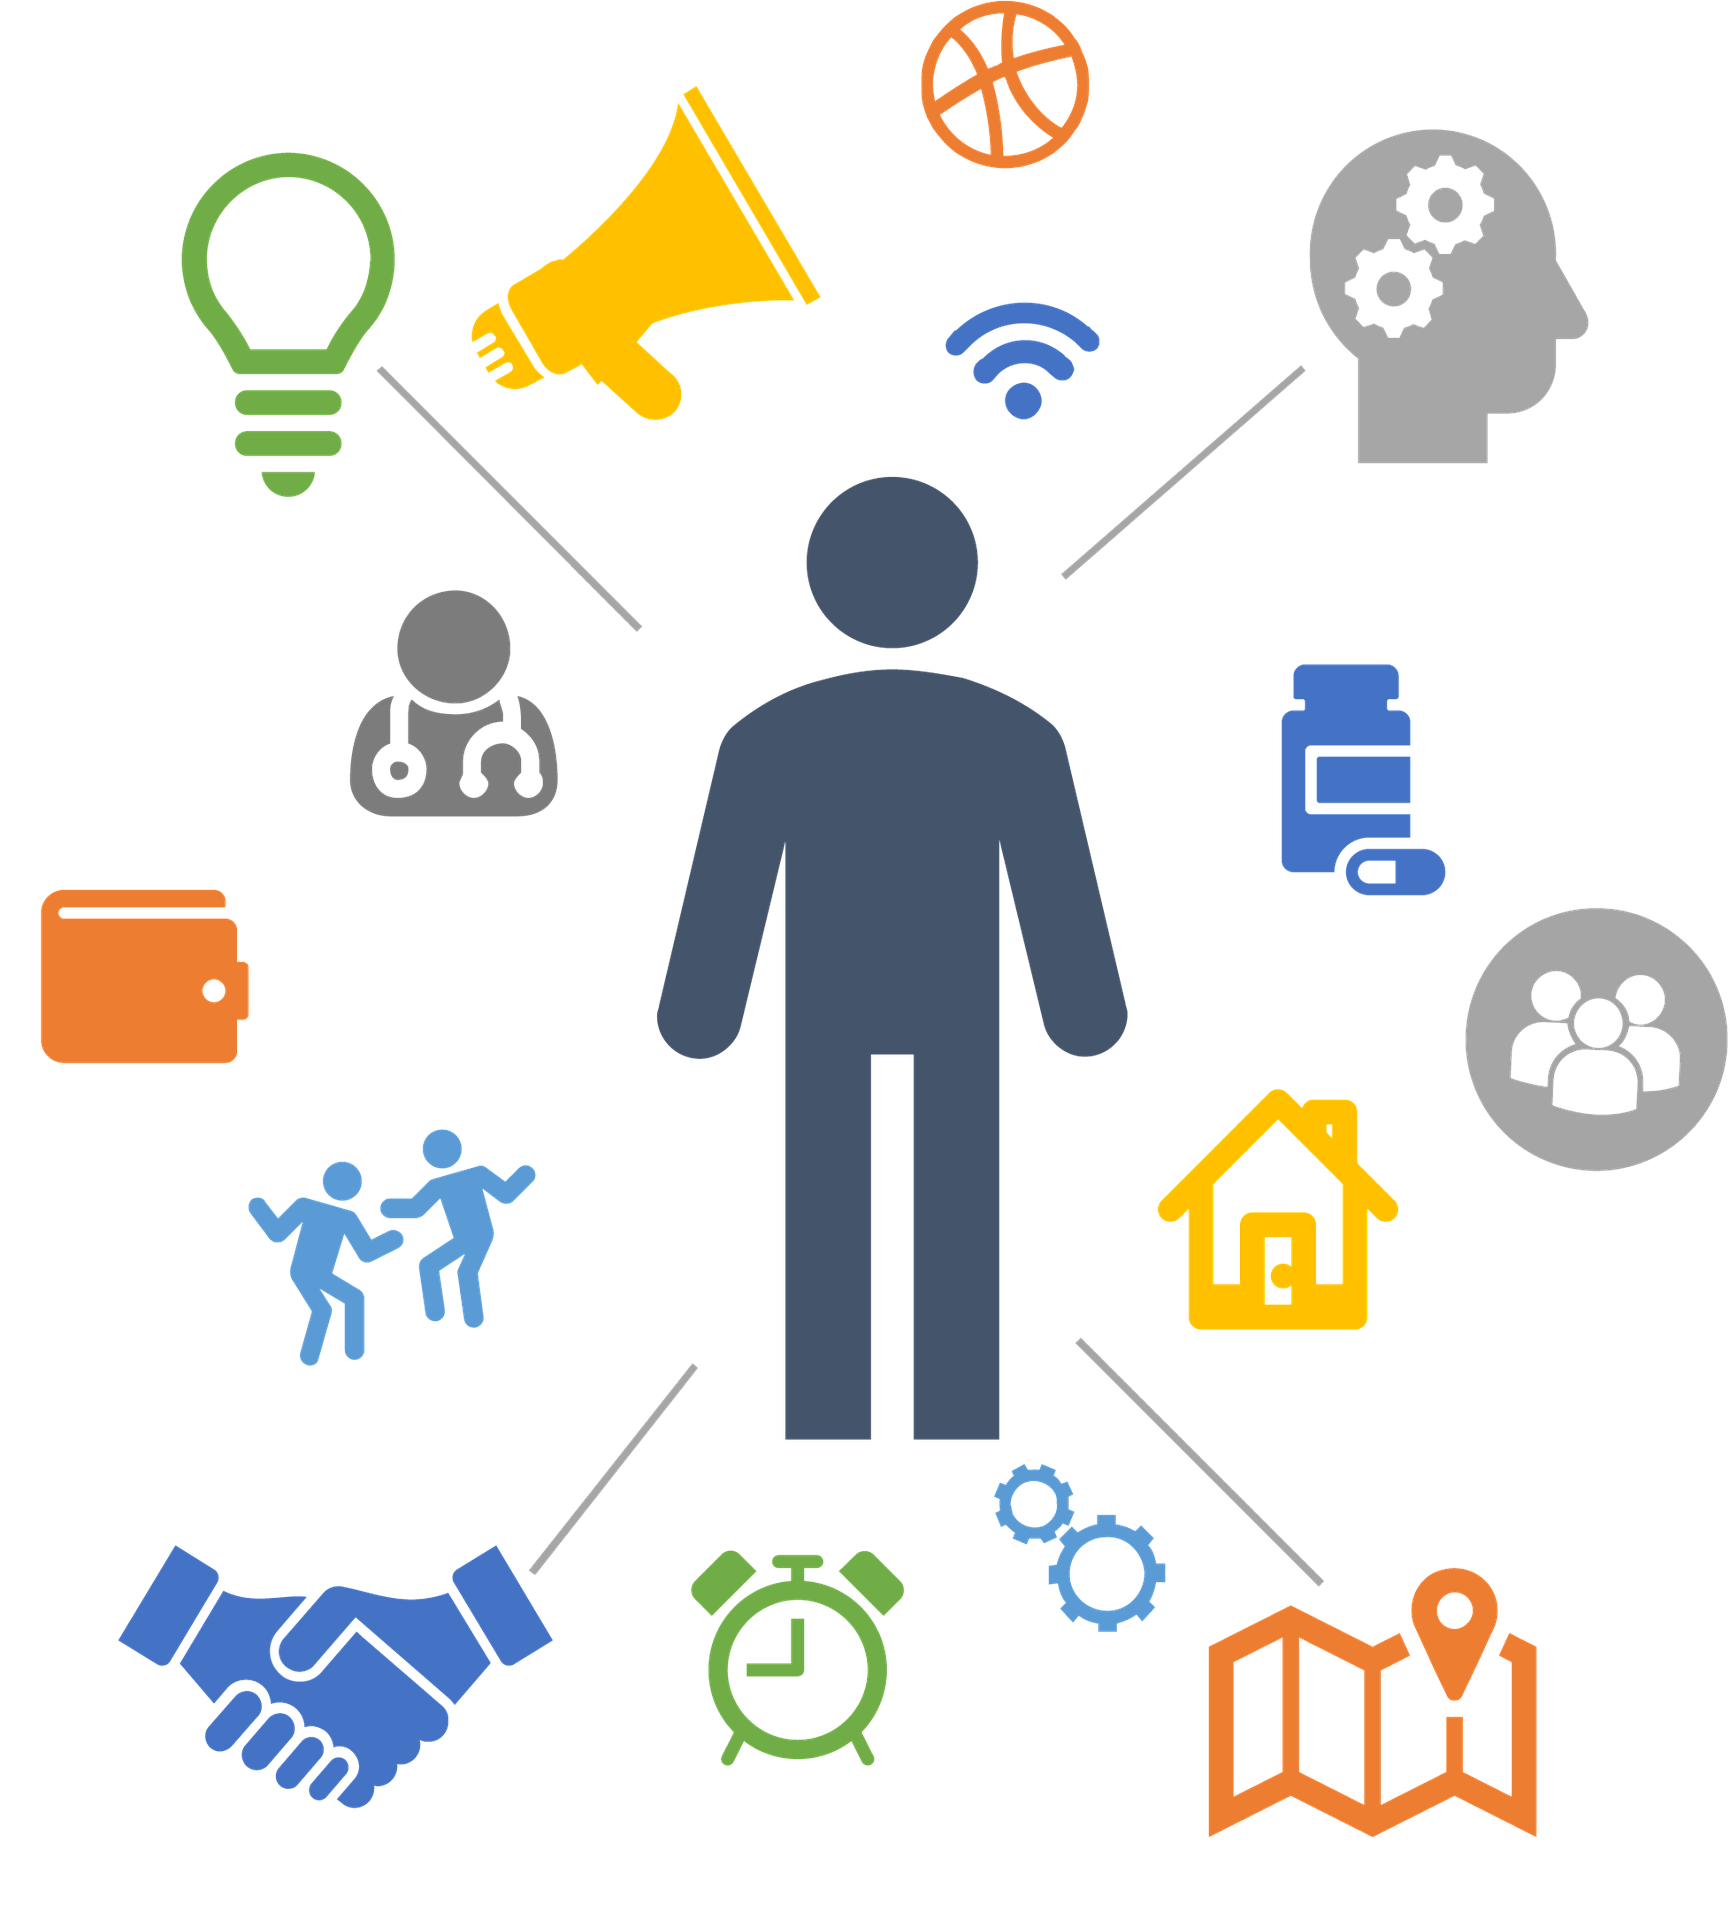 A stick person surrounded by icons representing barriers, such as sound and technology